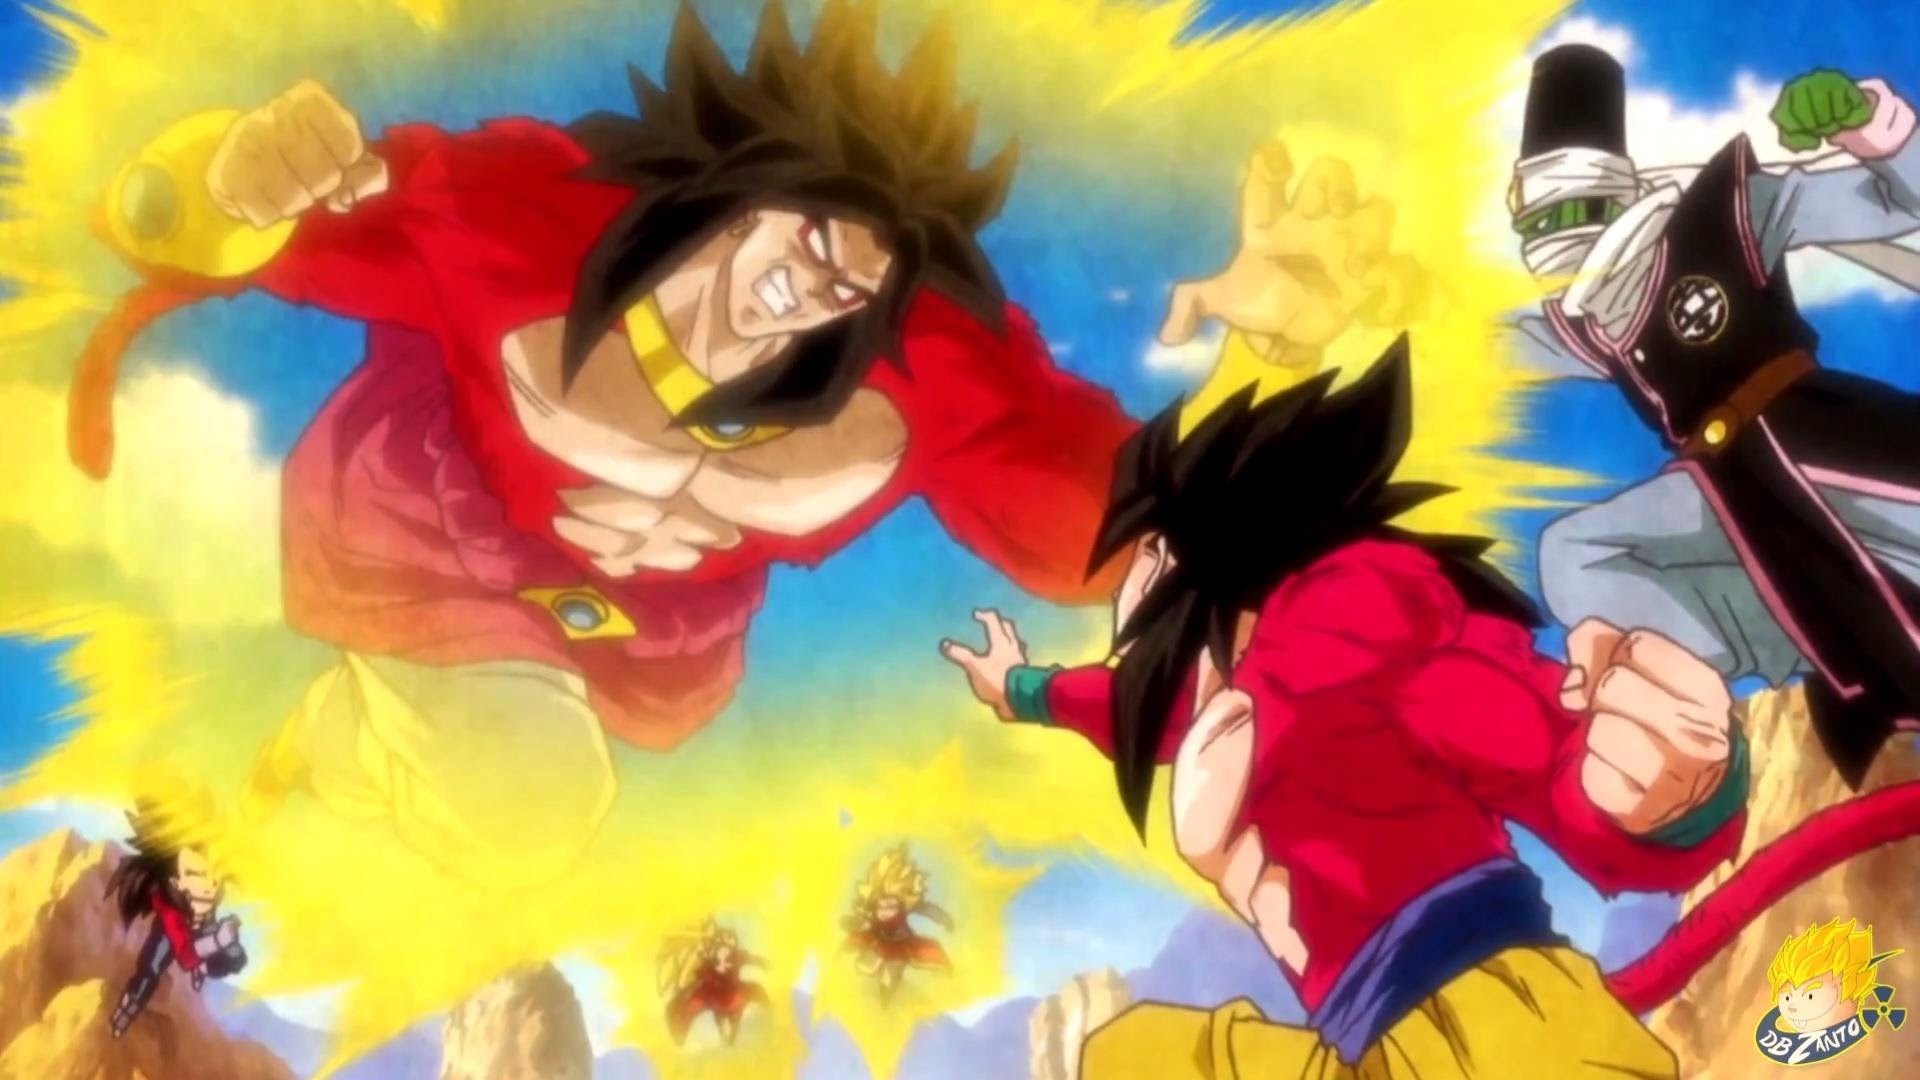 Broly Super Saiyin 4 – Entering the fight.